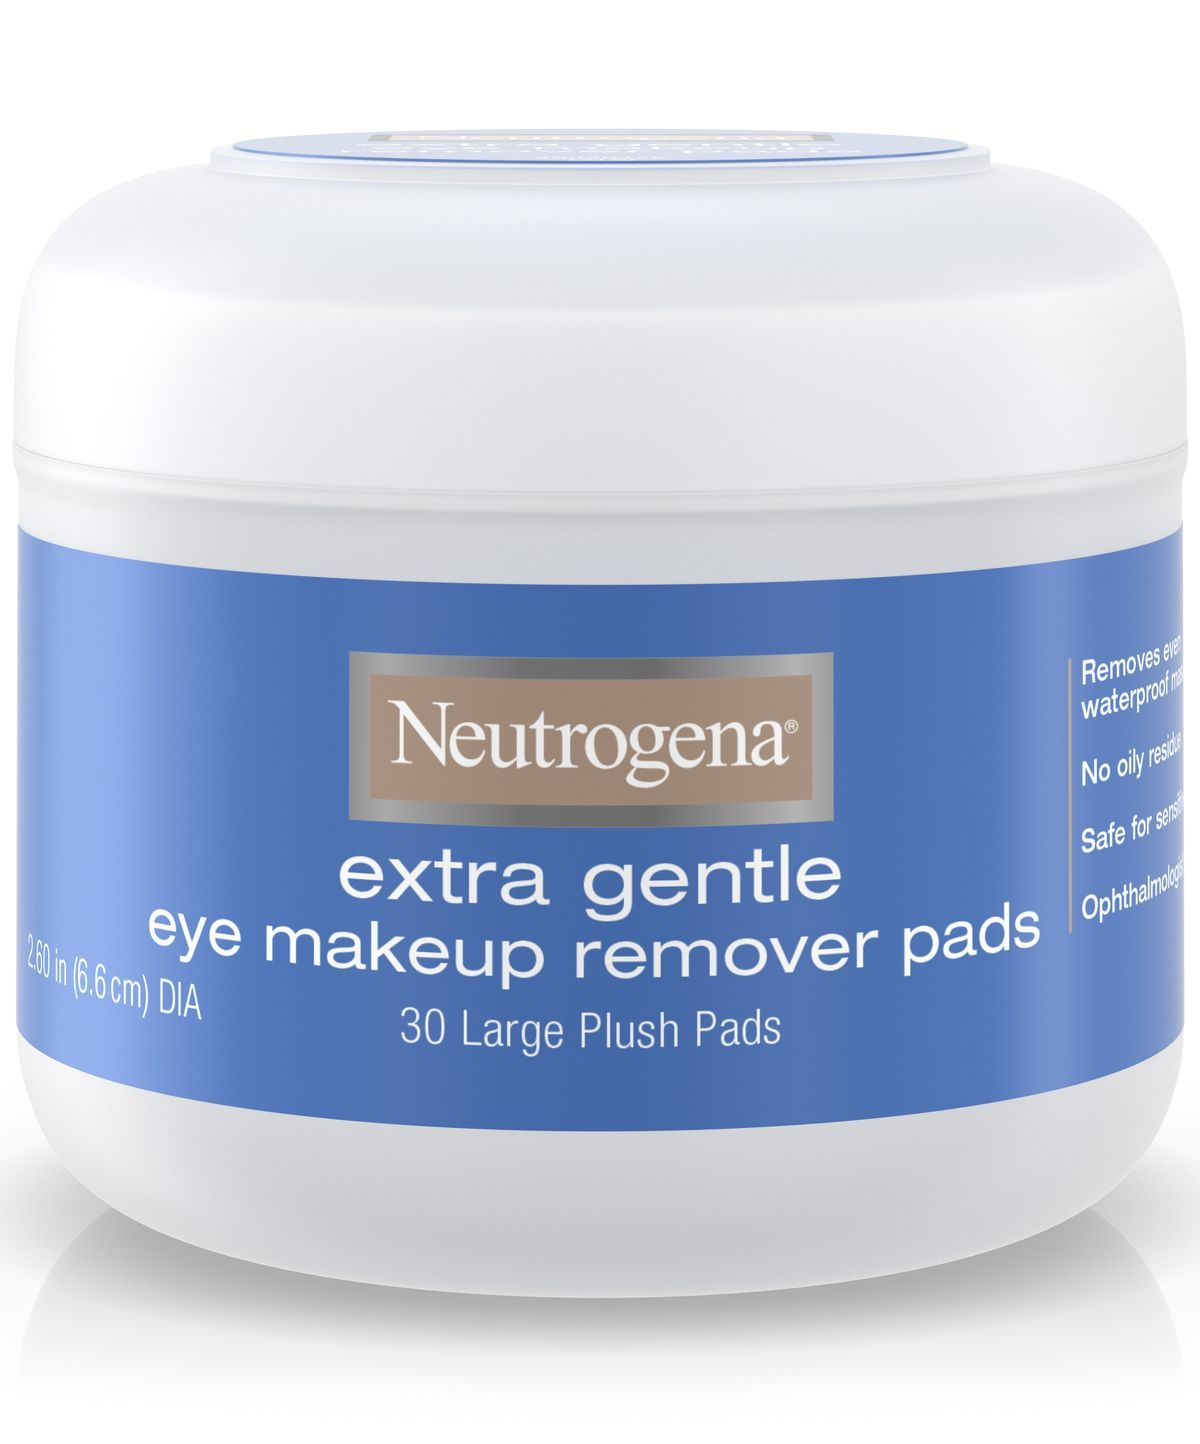 Discontinued Extra Gentle Eye Makeup Remover Pads In 2020 Makeup Remover Pads Gentle Eye Makeup Remover